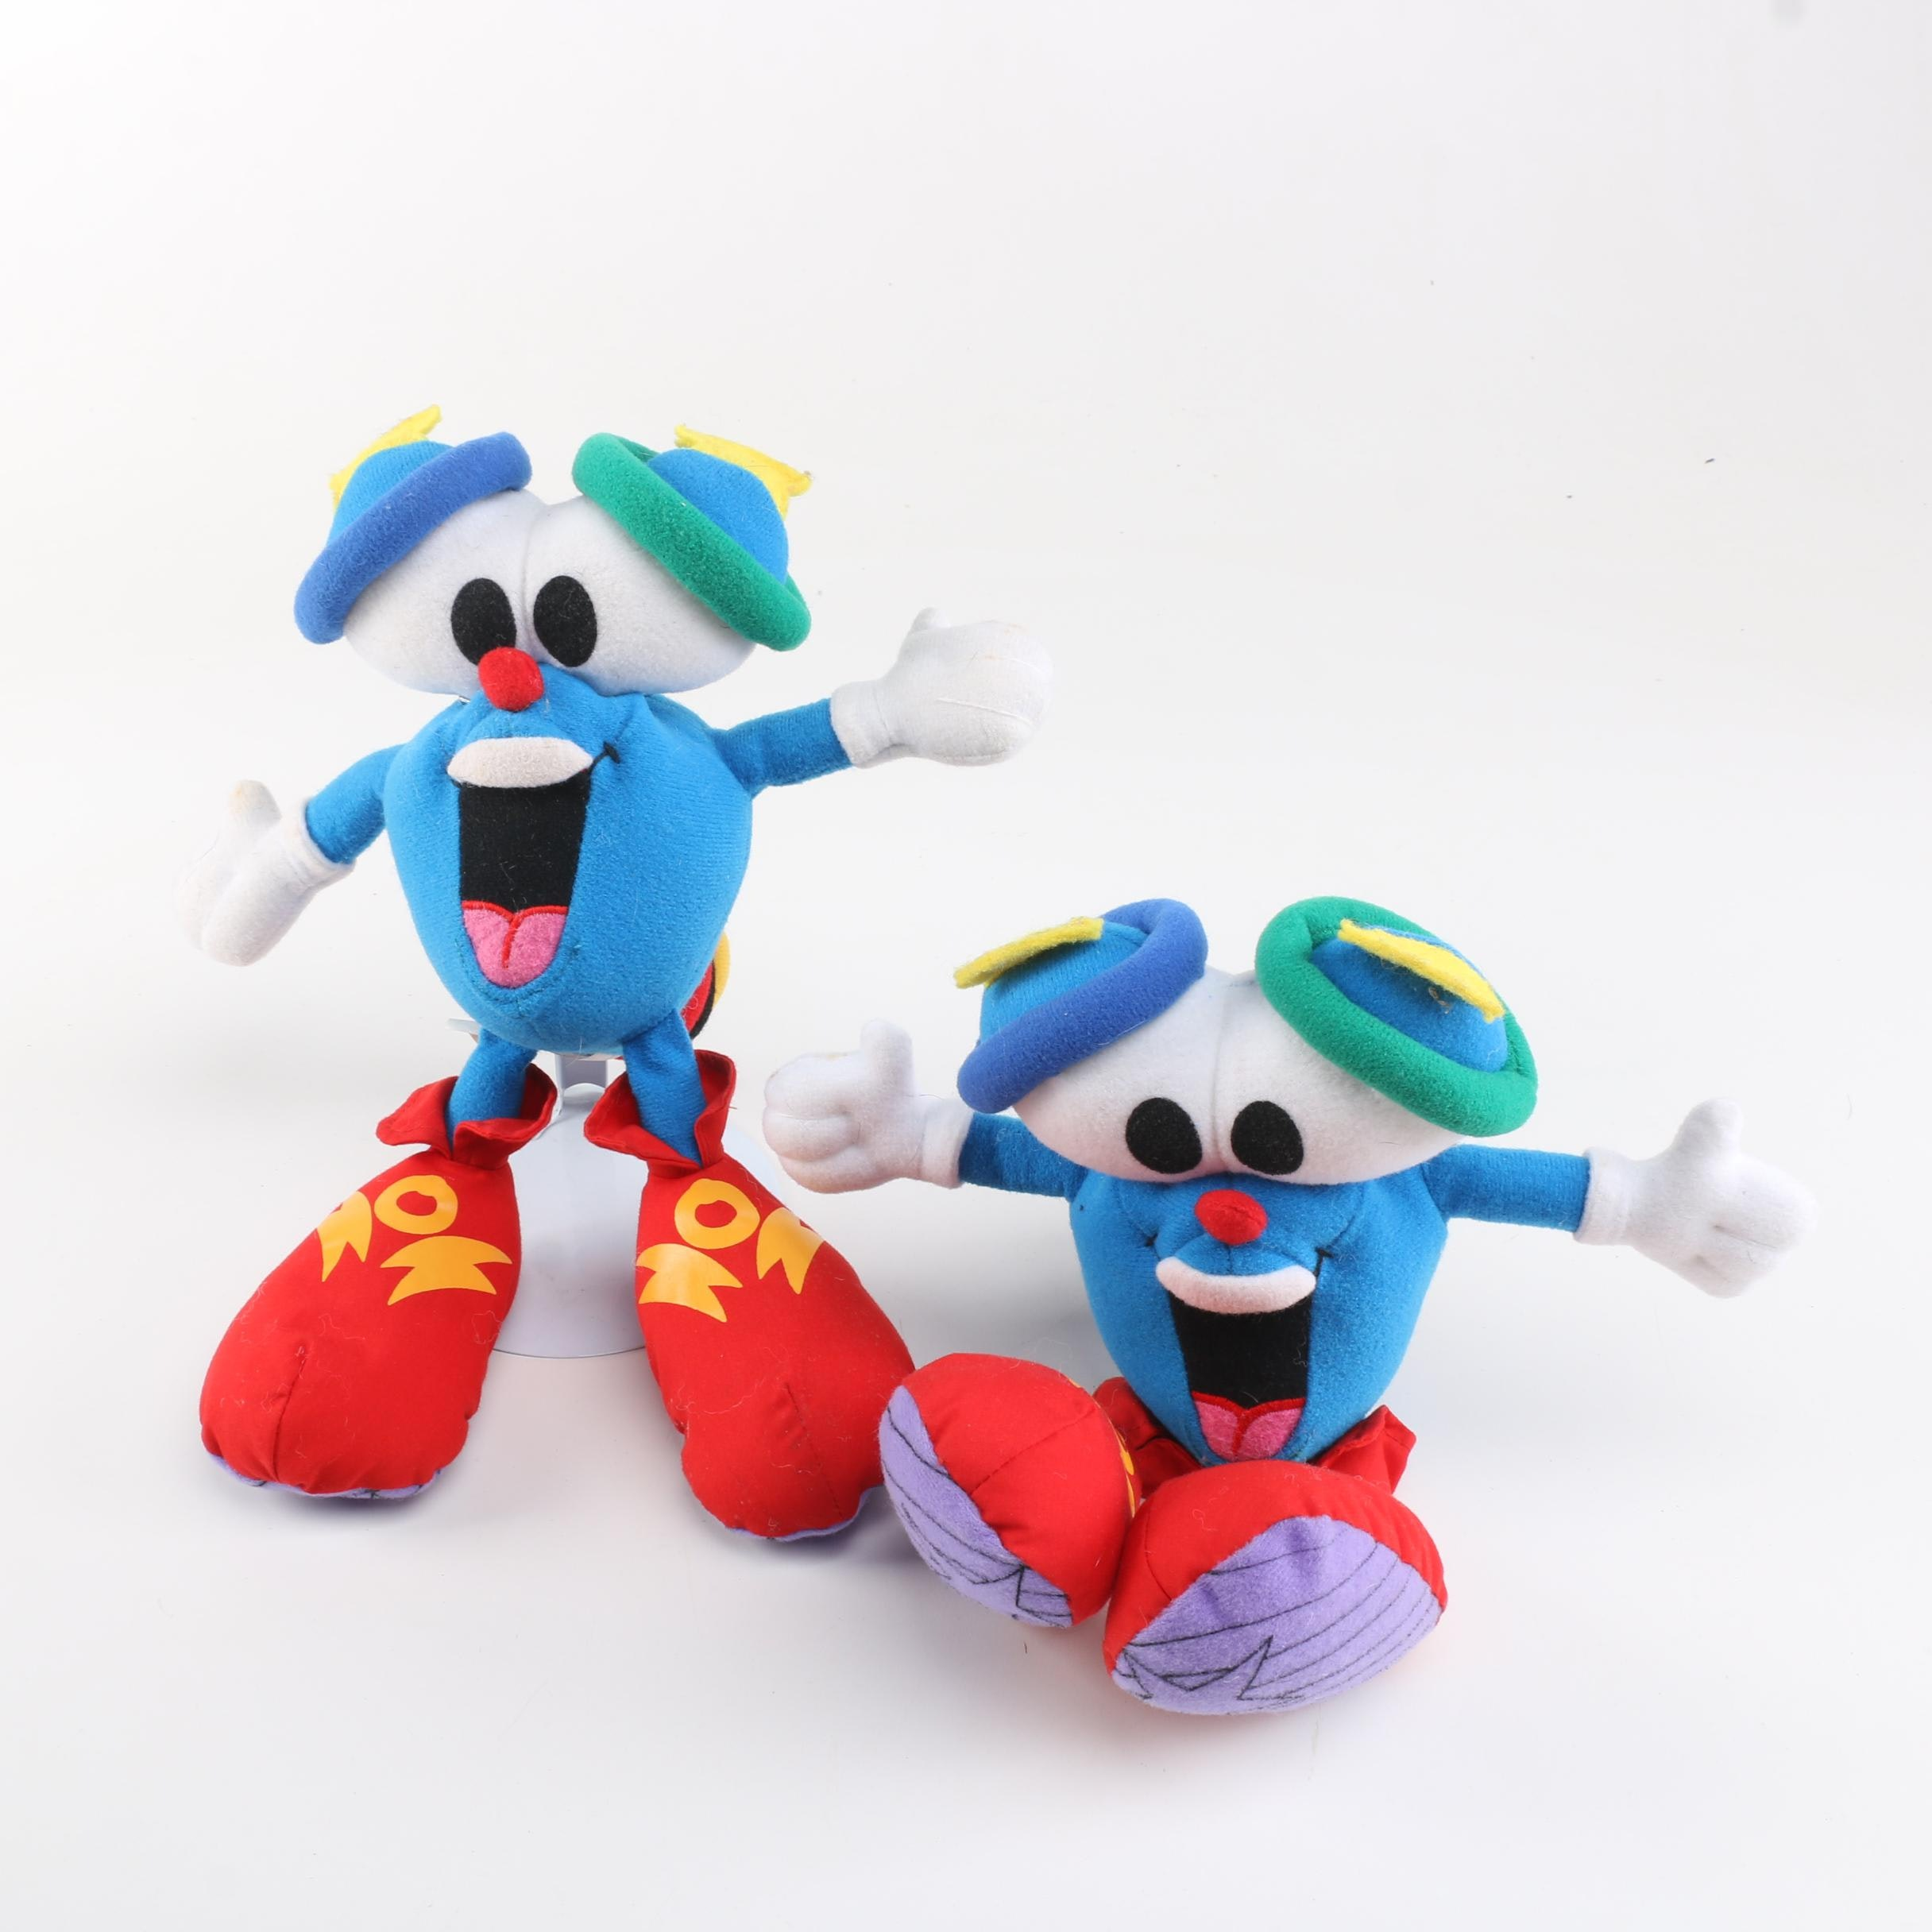 Collection of 1996 Atlanta Olympics Izzy Mascot Plush Toys